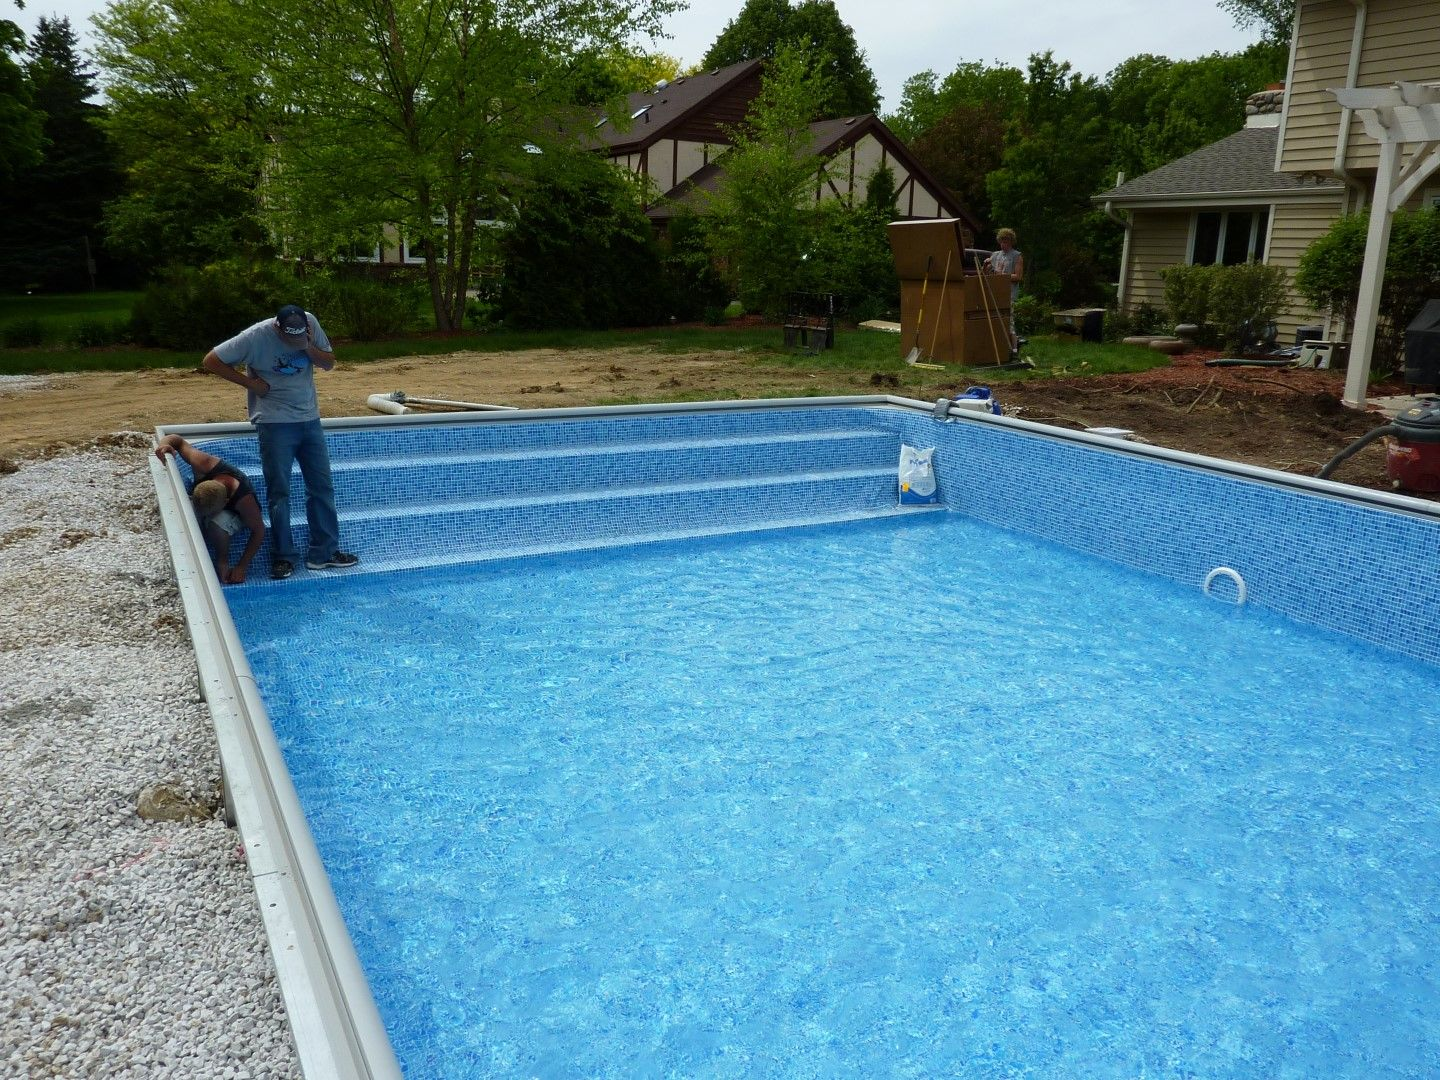 Fiberglass Swimming Pool Kits Fiberglass Pool Steps